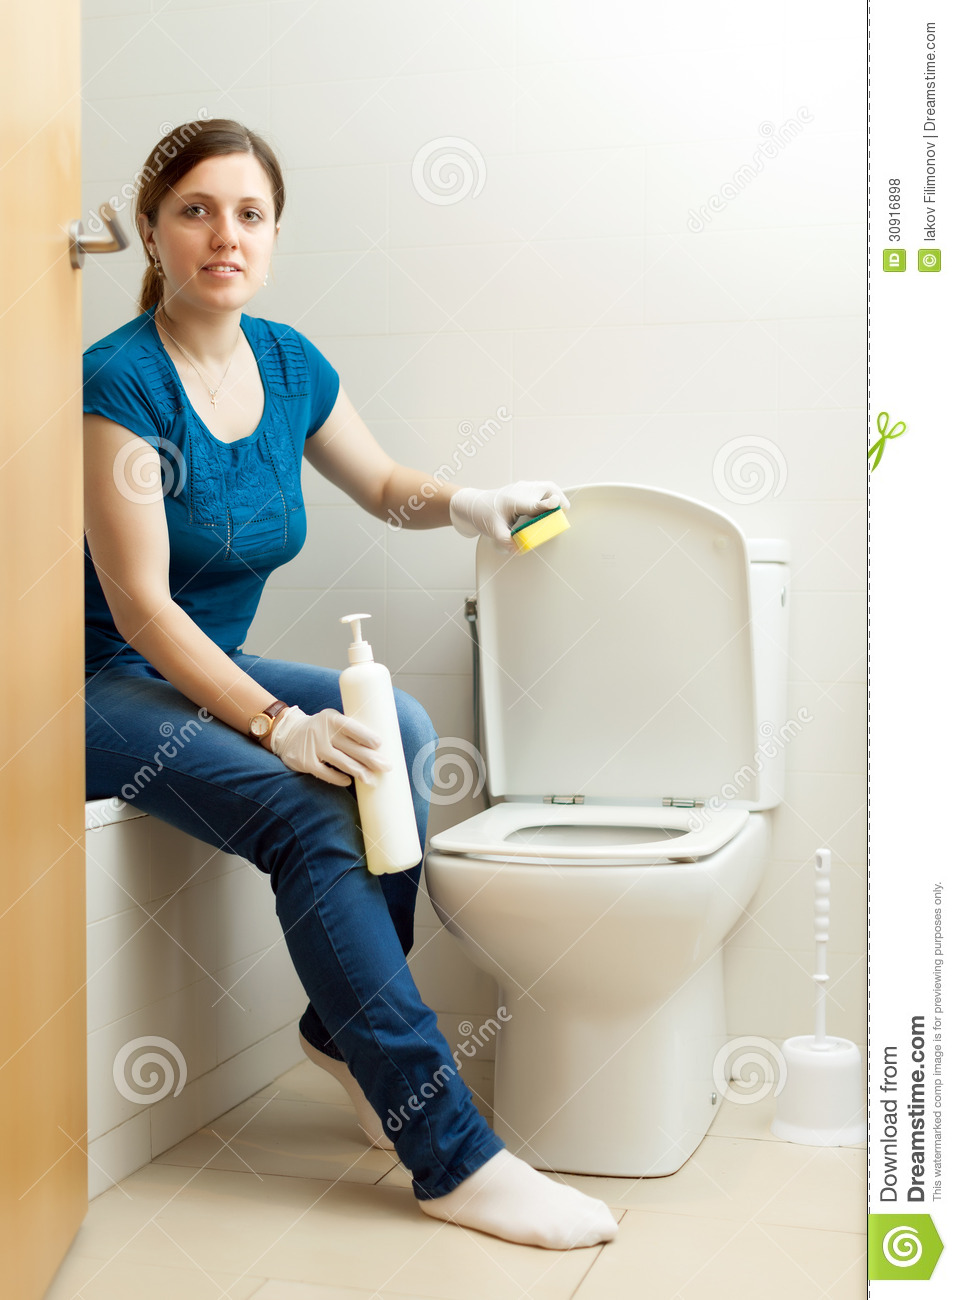 Woman Cleaning Toilet Bowl With Sponge Royalty Free Stock